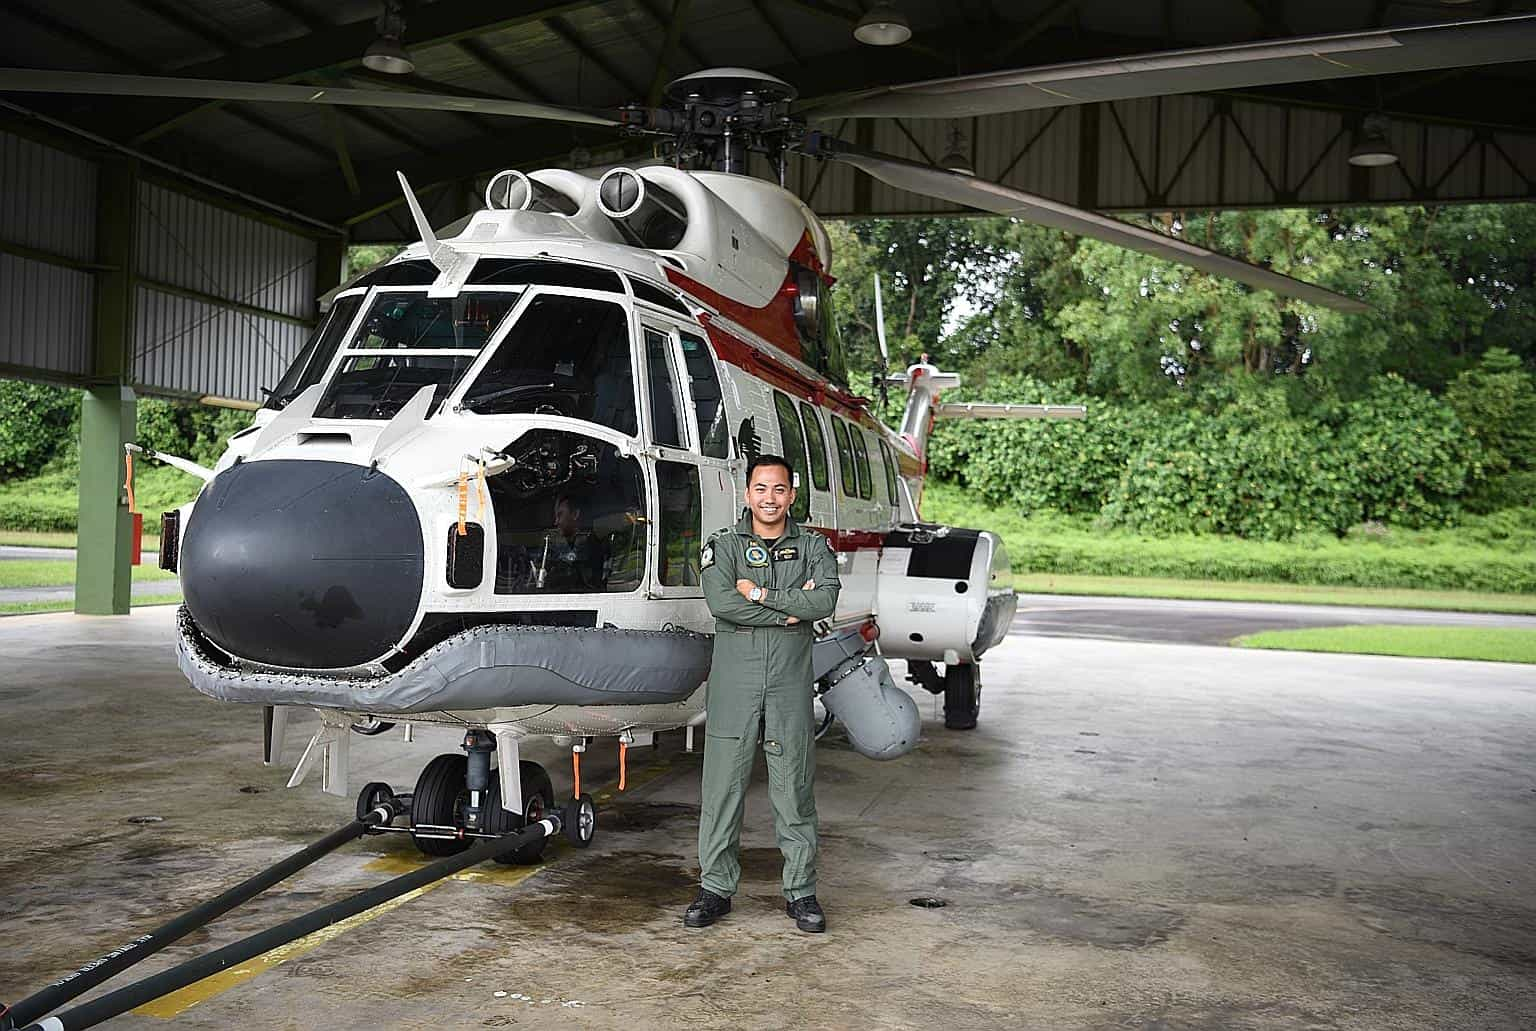 Malays in Singapore army, Malays in the Singapore army? They serve in the army, navy and air force.